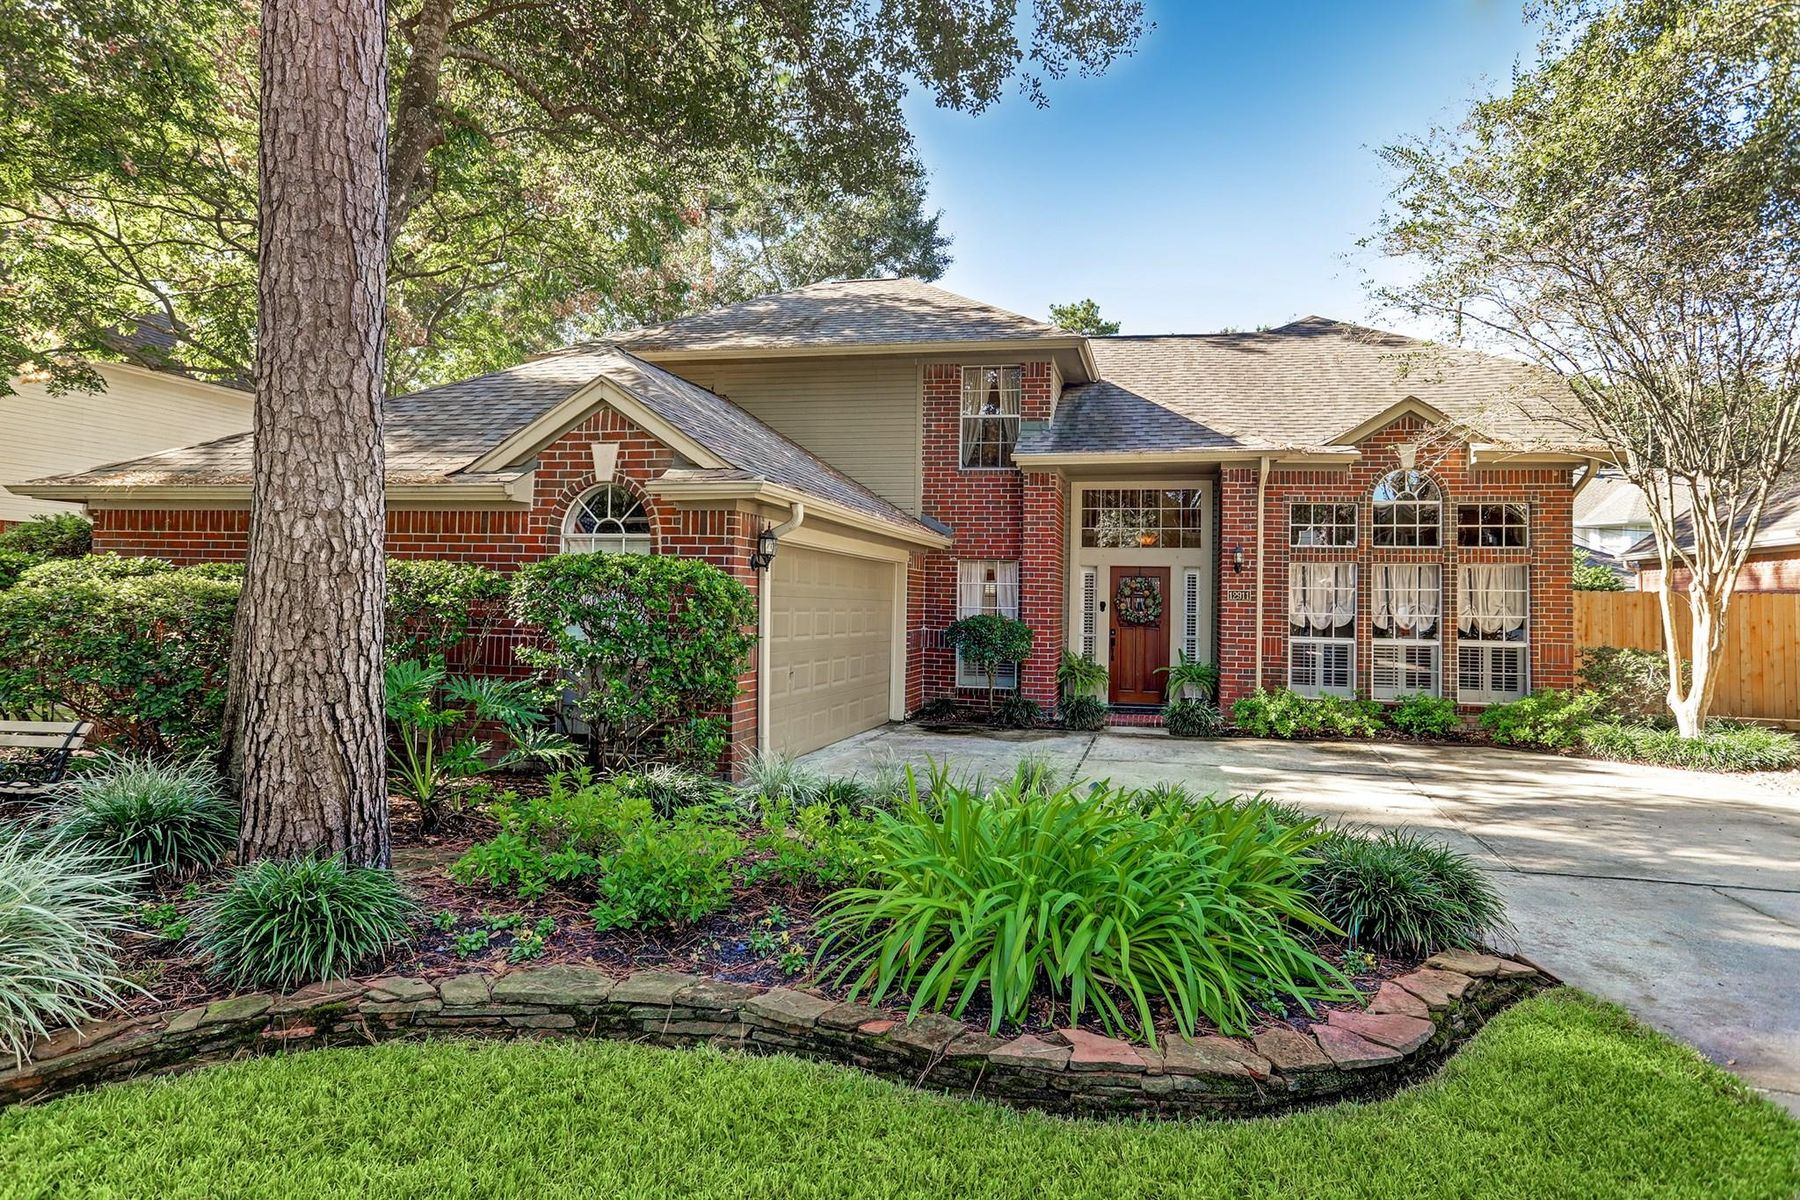 Single Family Homes for Sale at 12911 Peach Meadow Drive Cypress, Texas 77429 United States